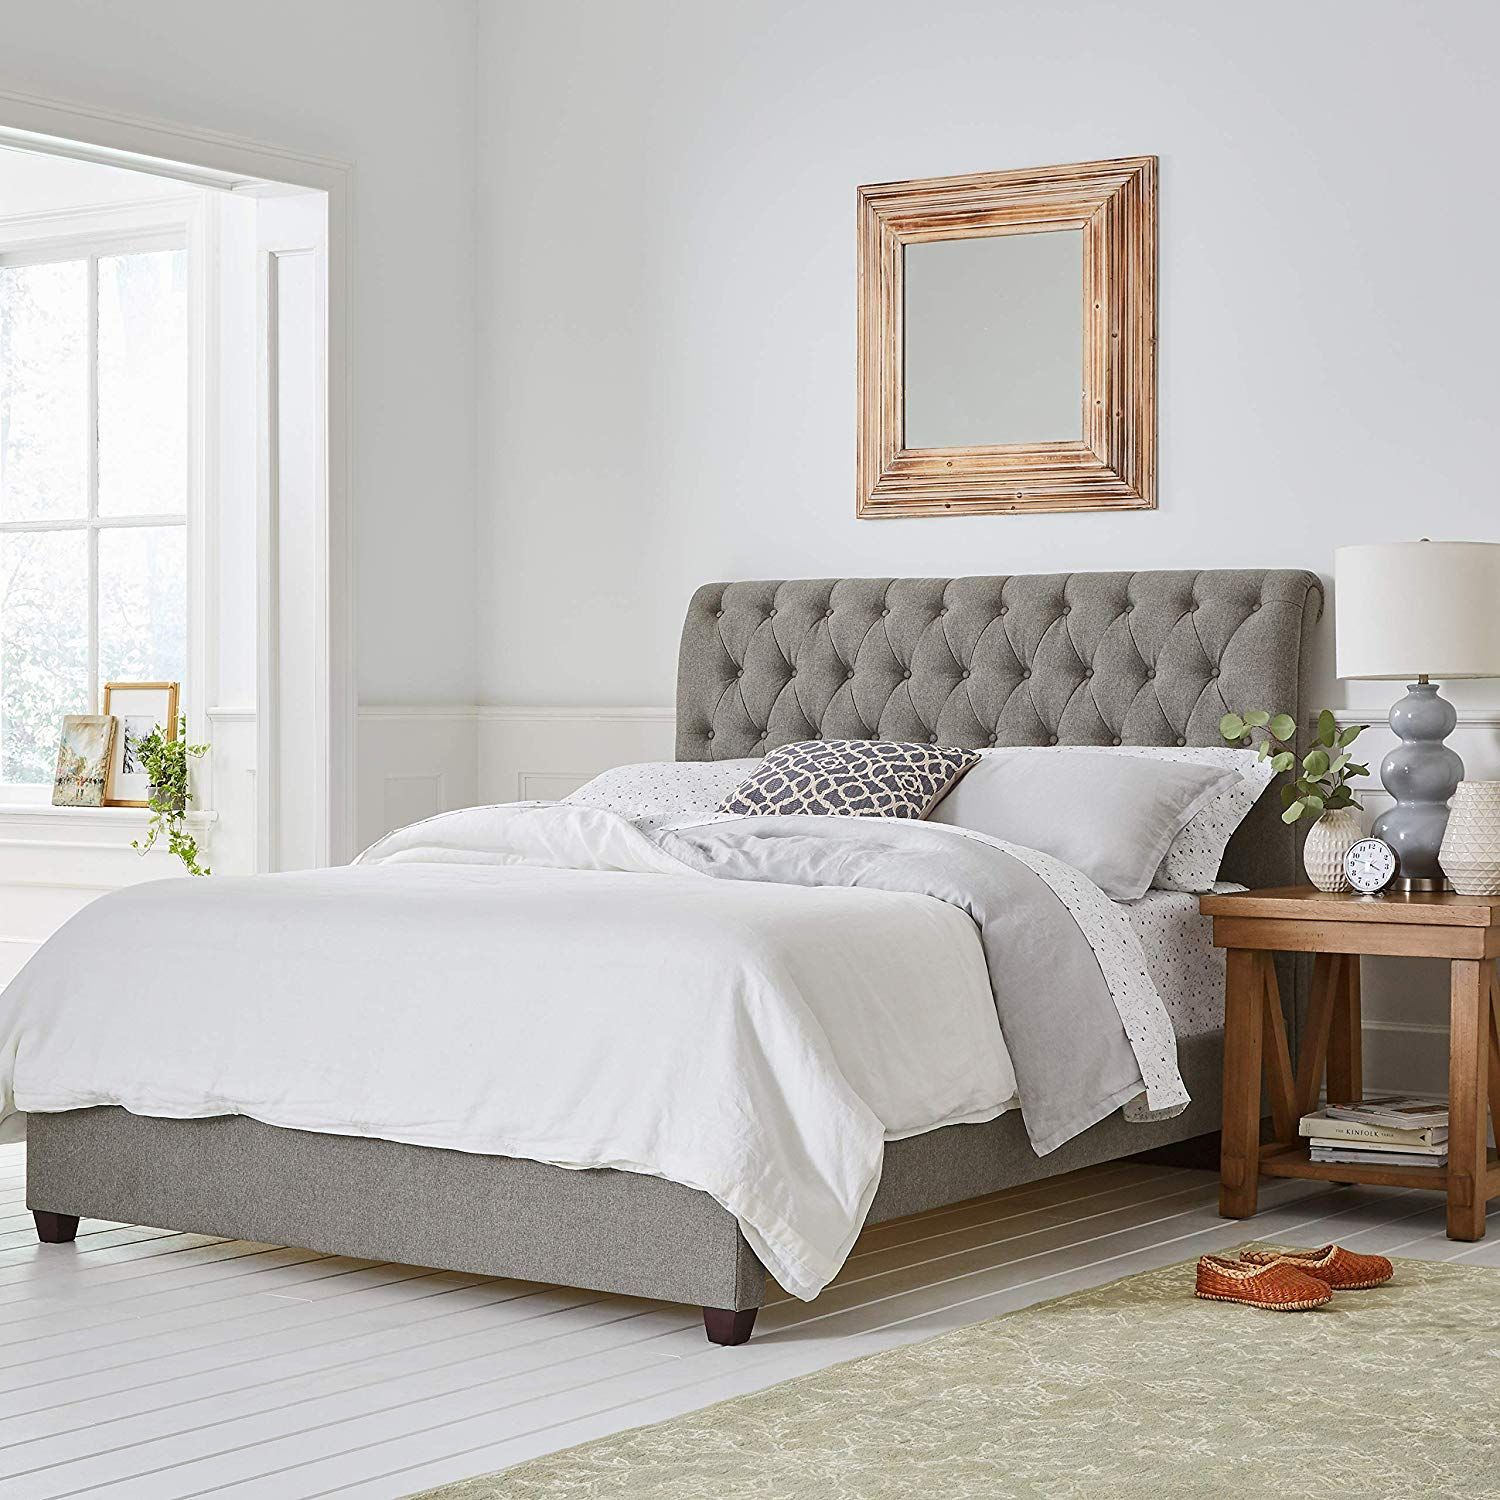 Grey Patterns And Tufted Headboard Make The Perfect Combo Citrine